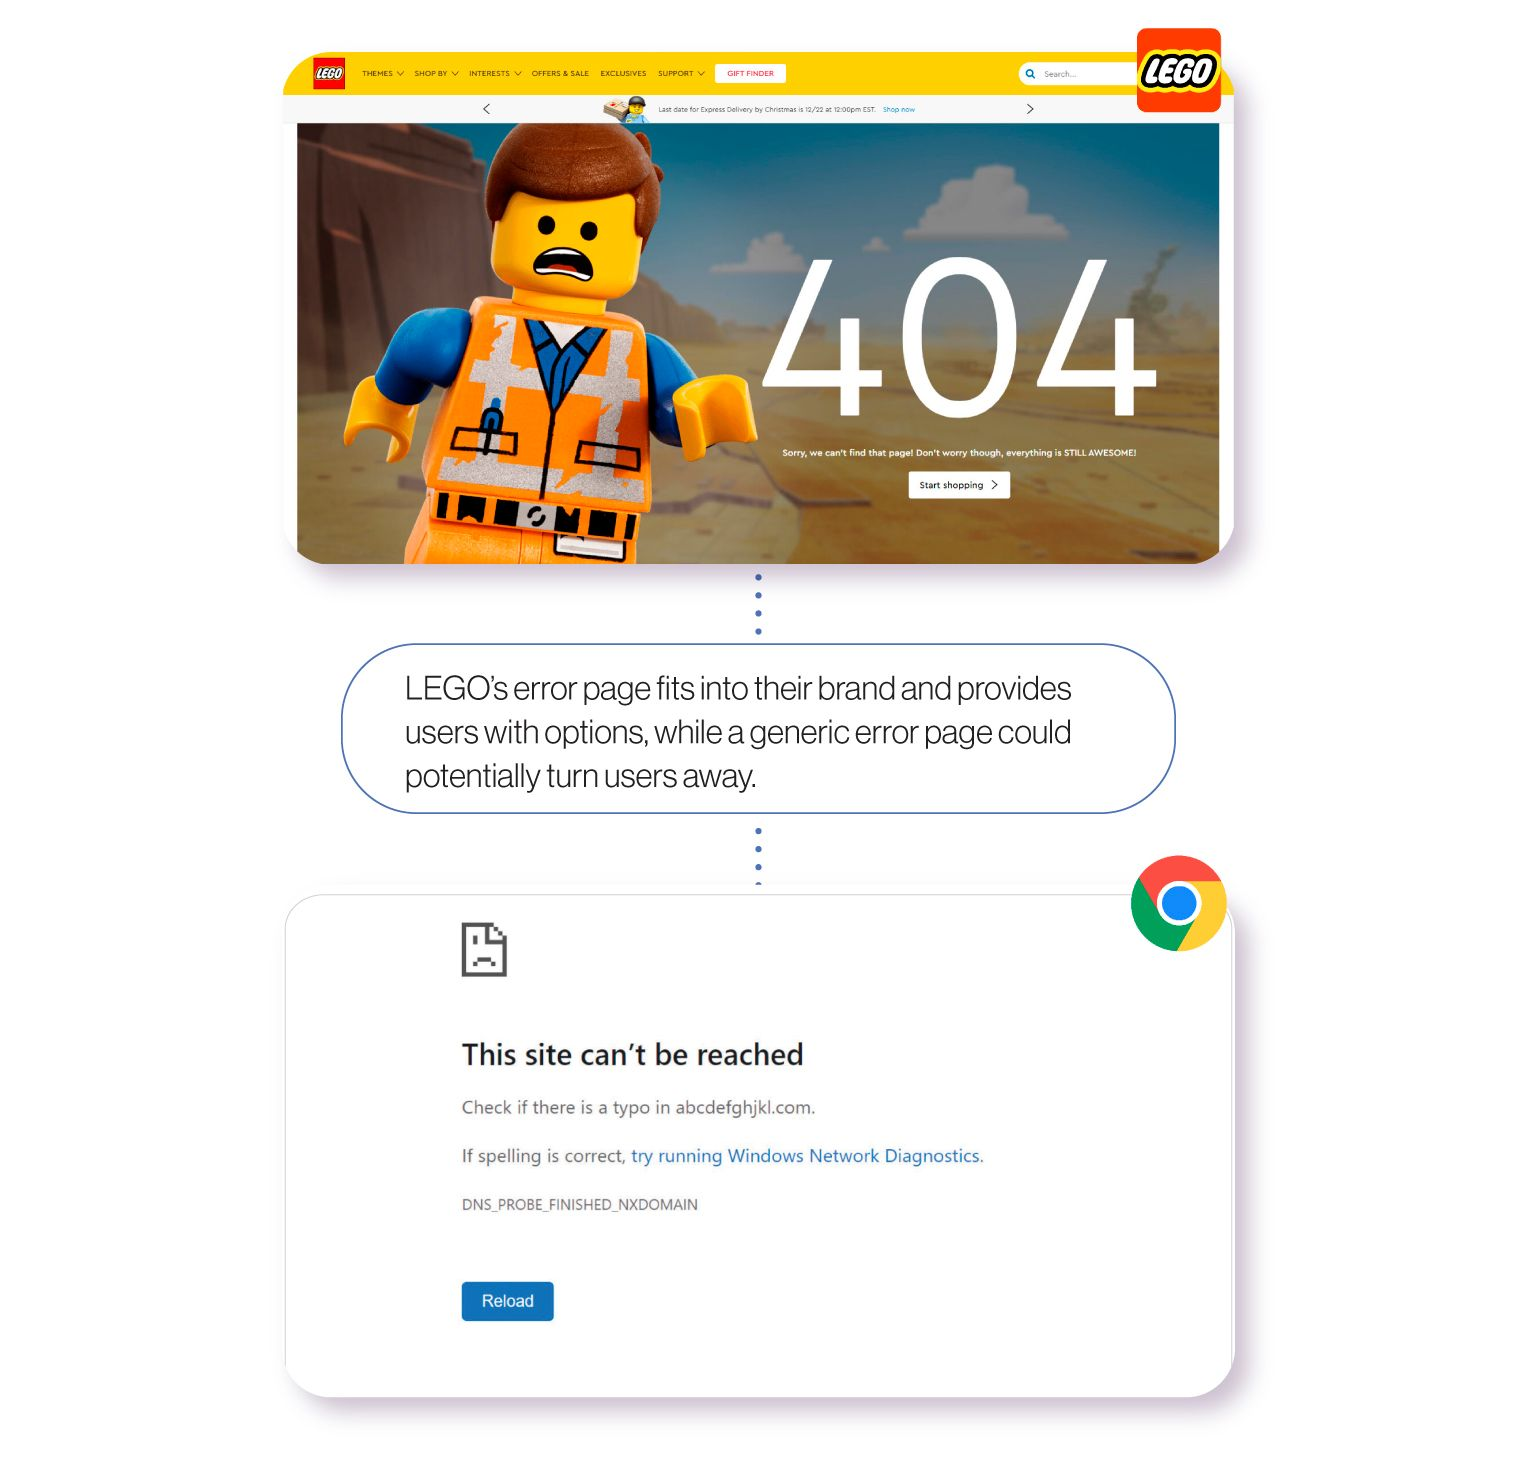 Image: Examples of error pages from LEGO and the Google Chrome web browser. LEGO's creative error page, featuring the Emmet character from The Lego Movie, fits into their brand and provides users with links to navigate to other parts of their website. A generic error page, on the other hand, could potentially turn site visitors away.